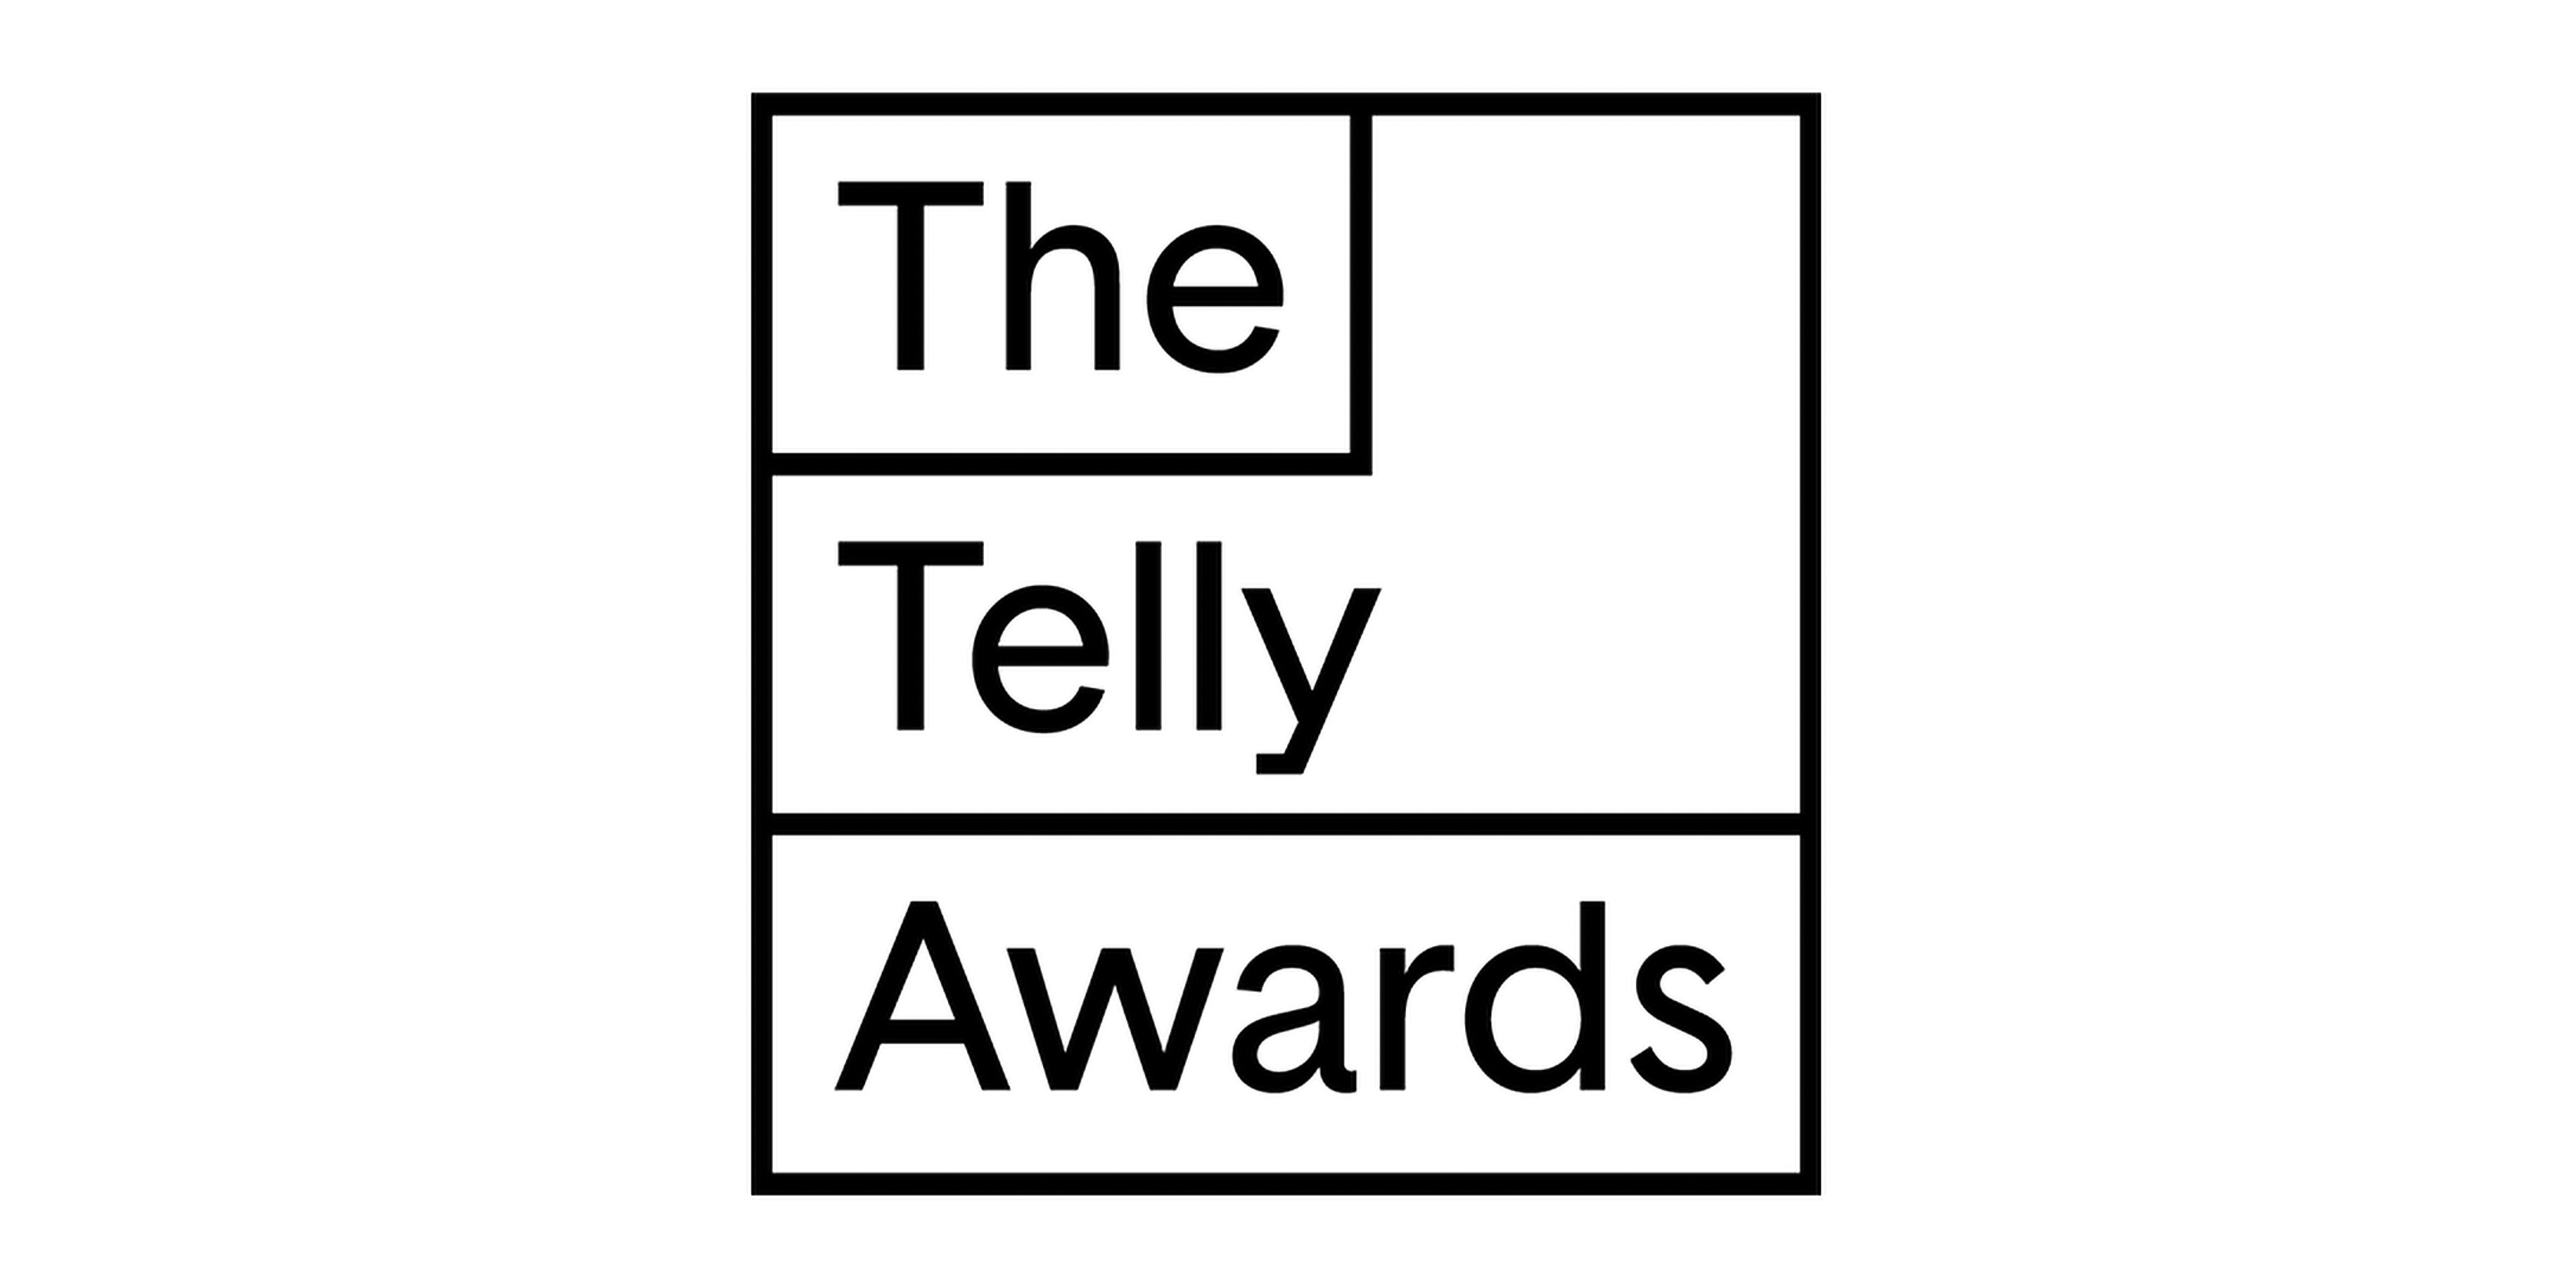 The Embassy scores a double at The Telly Awards